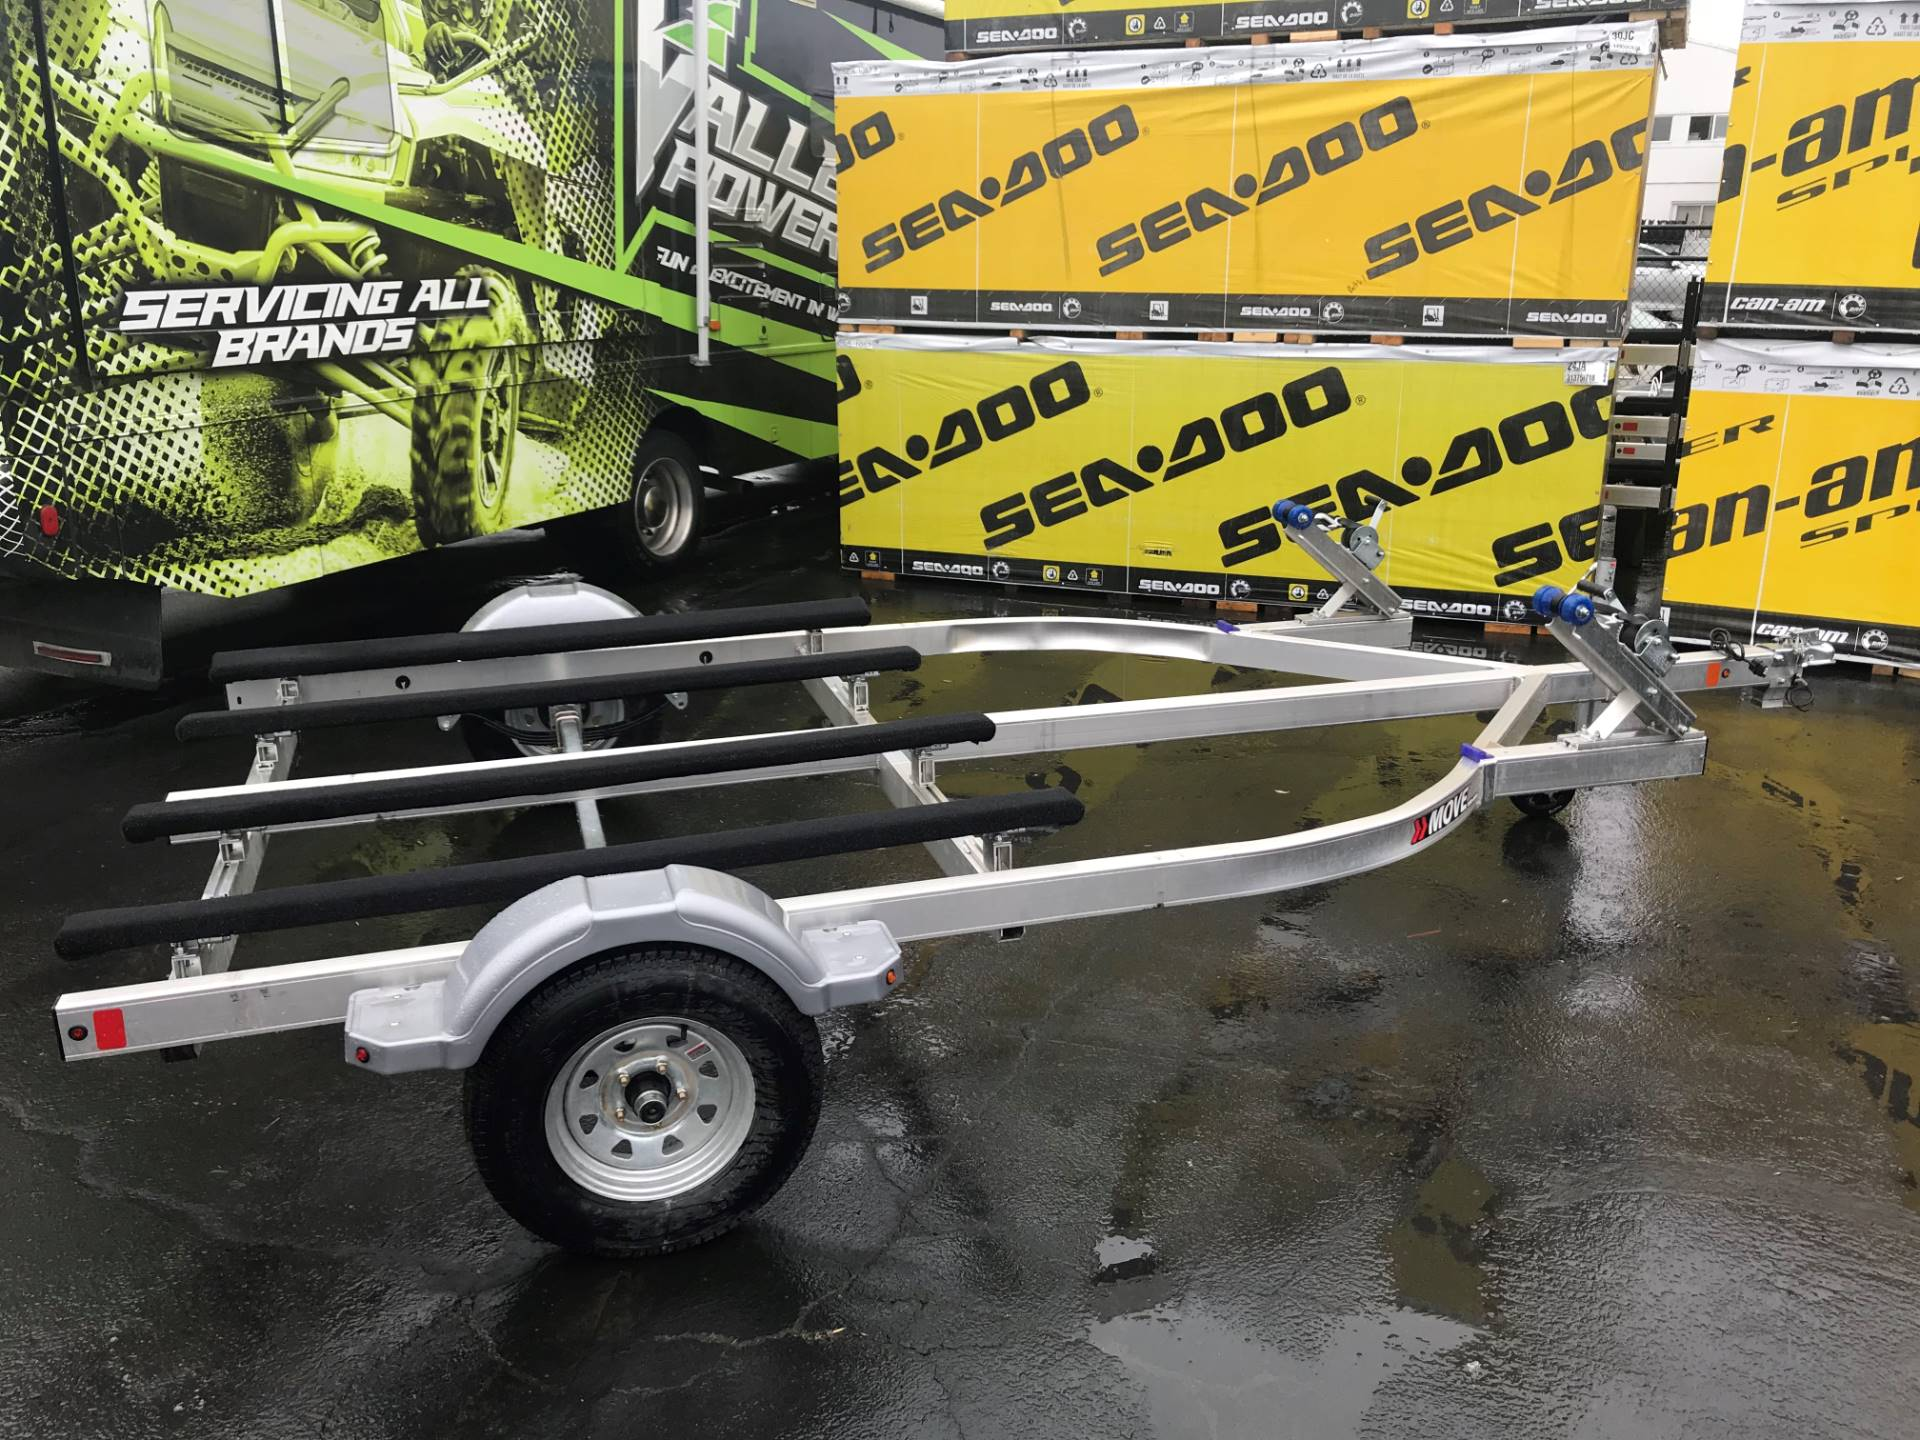 2018 Karavan Trailers Trailer Sea-Doo Move II in Eugene, Oregon - Photo 1